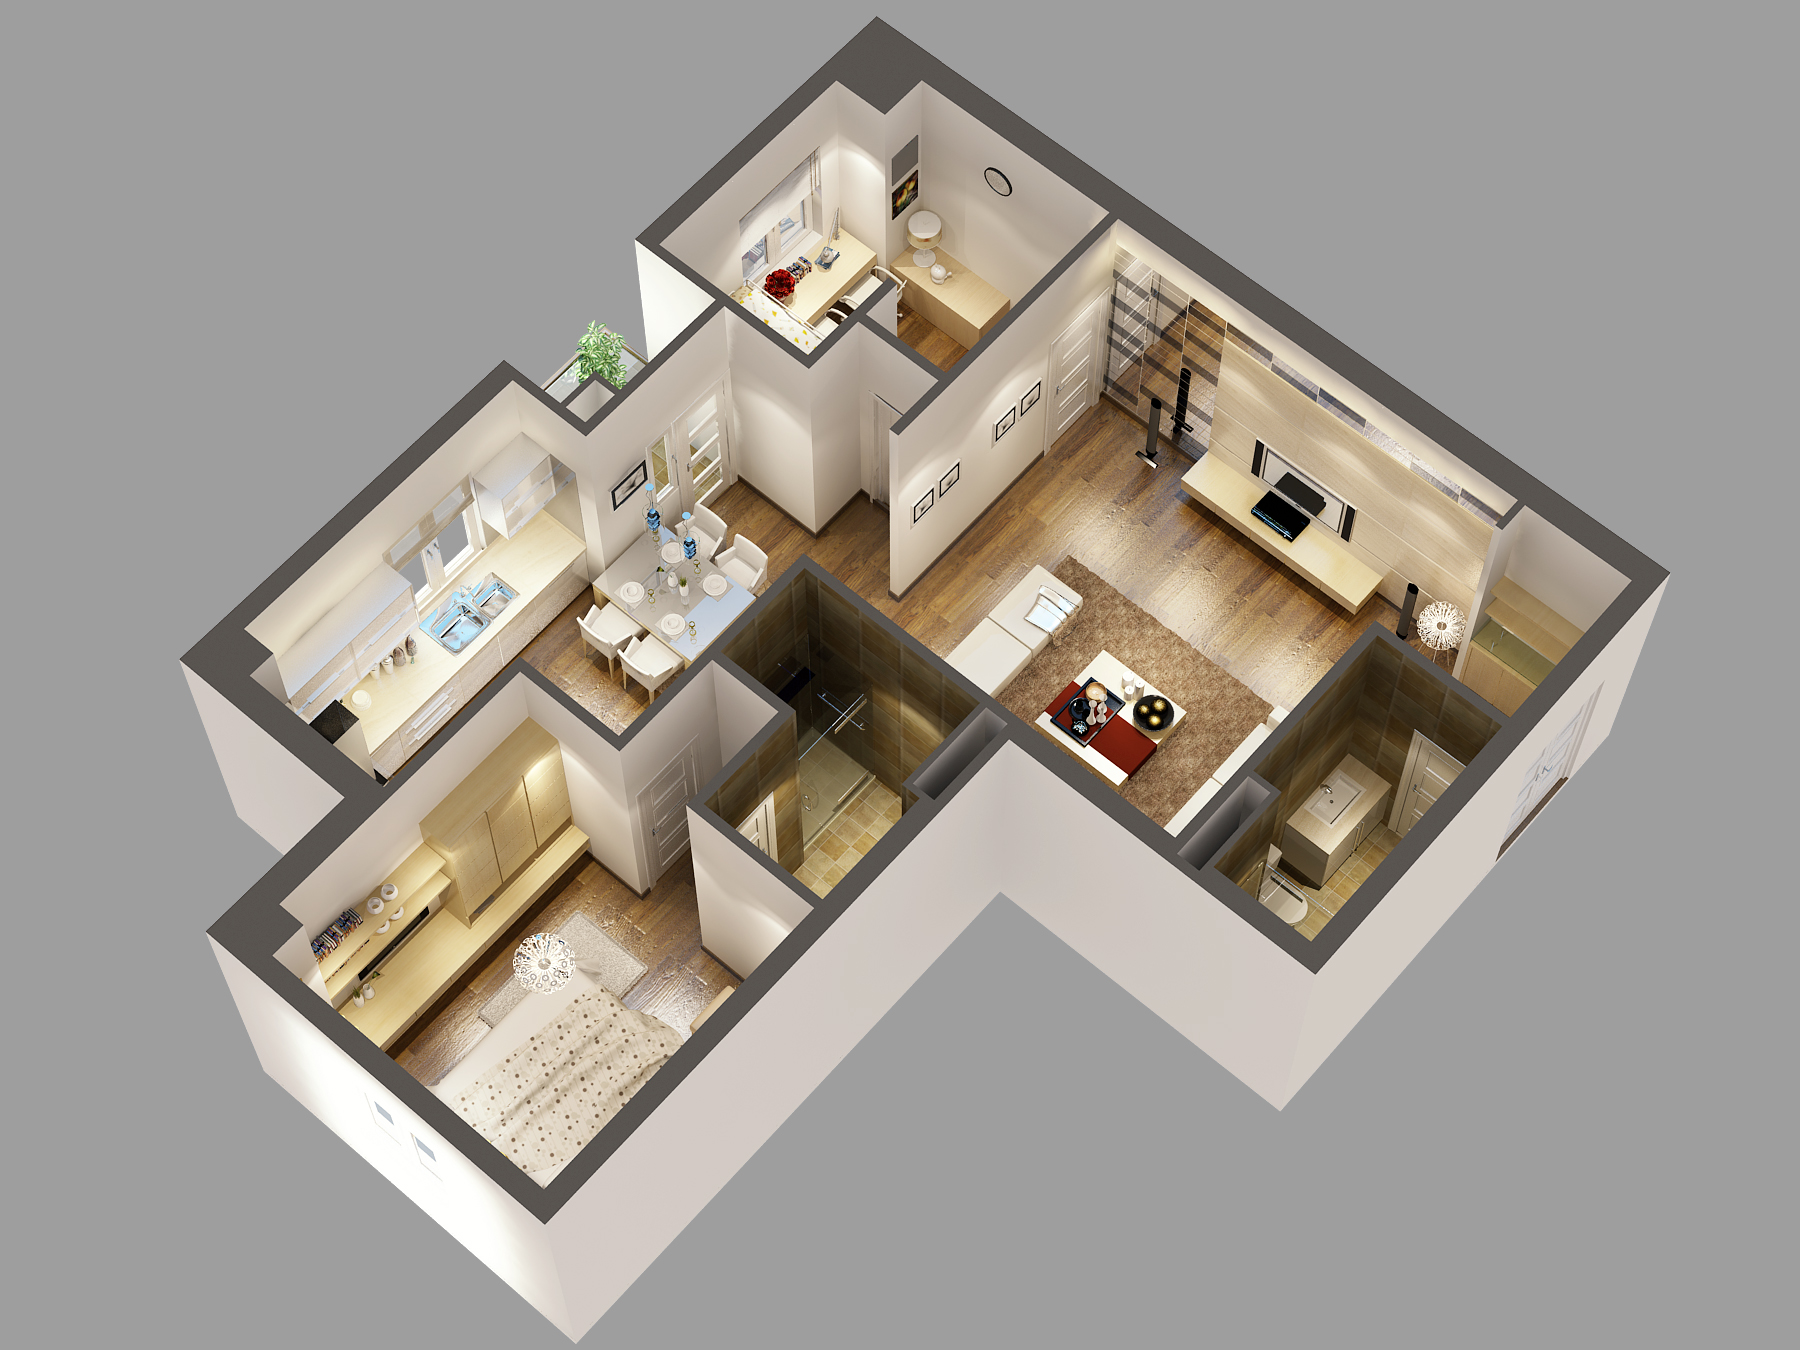 Detailed house cutaway 3d model 3d model buy detailed for House designs 3d model